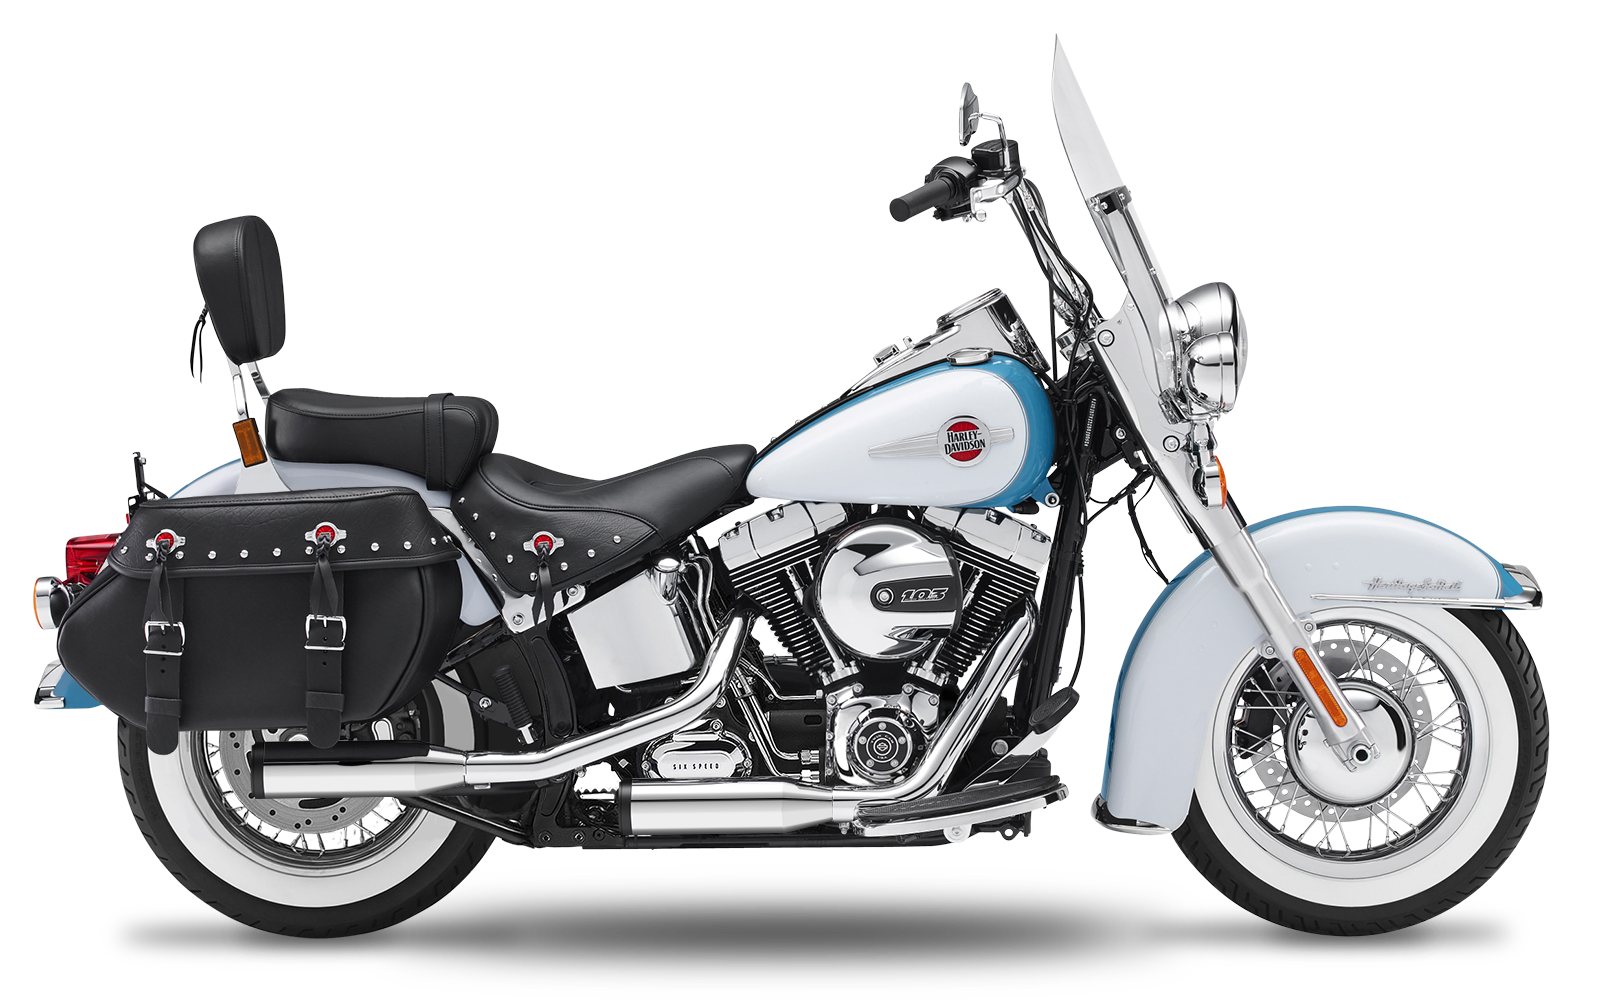 Softail - Heritage - Evolution - -1999 - Endtöpfe